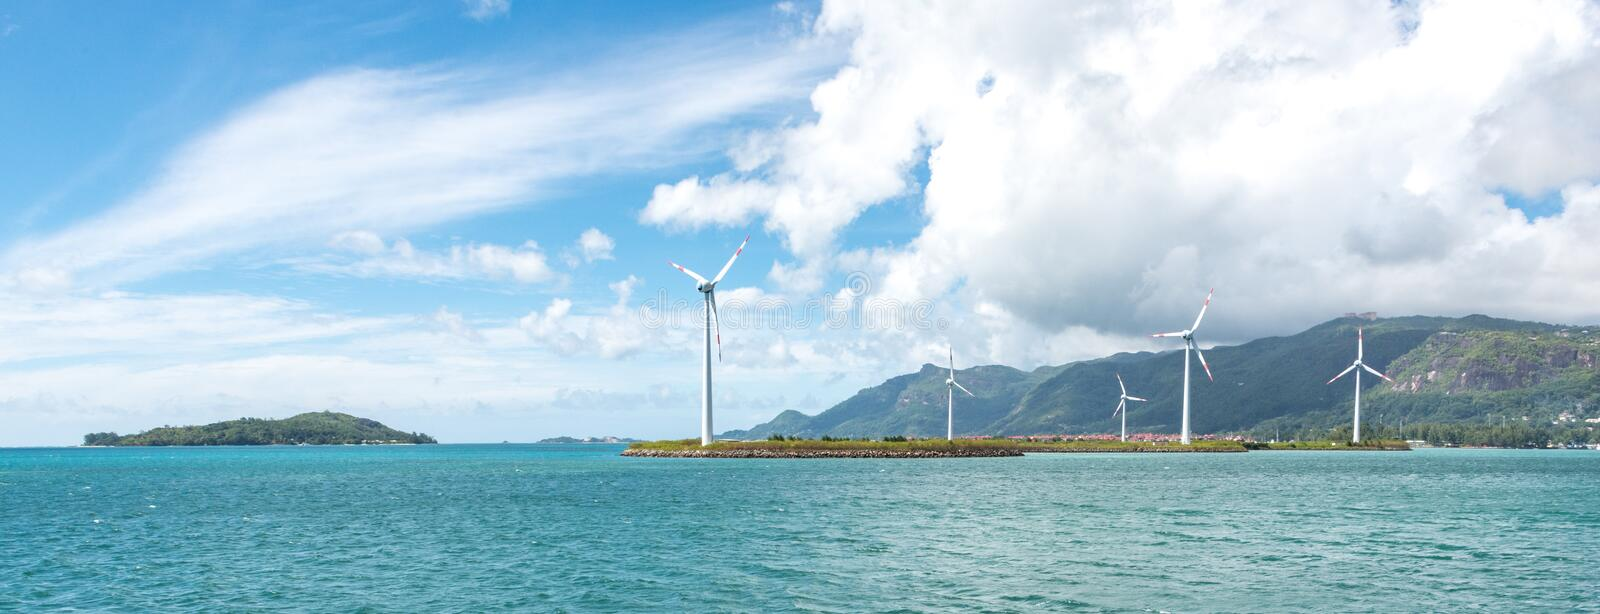 Offshore wind turbines in Seychelles stock photo